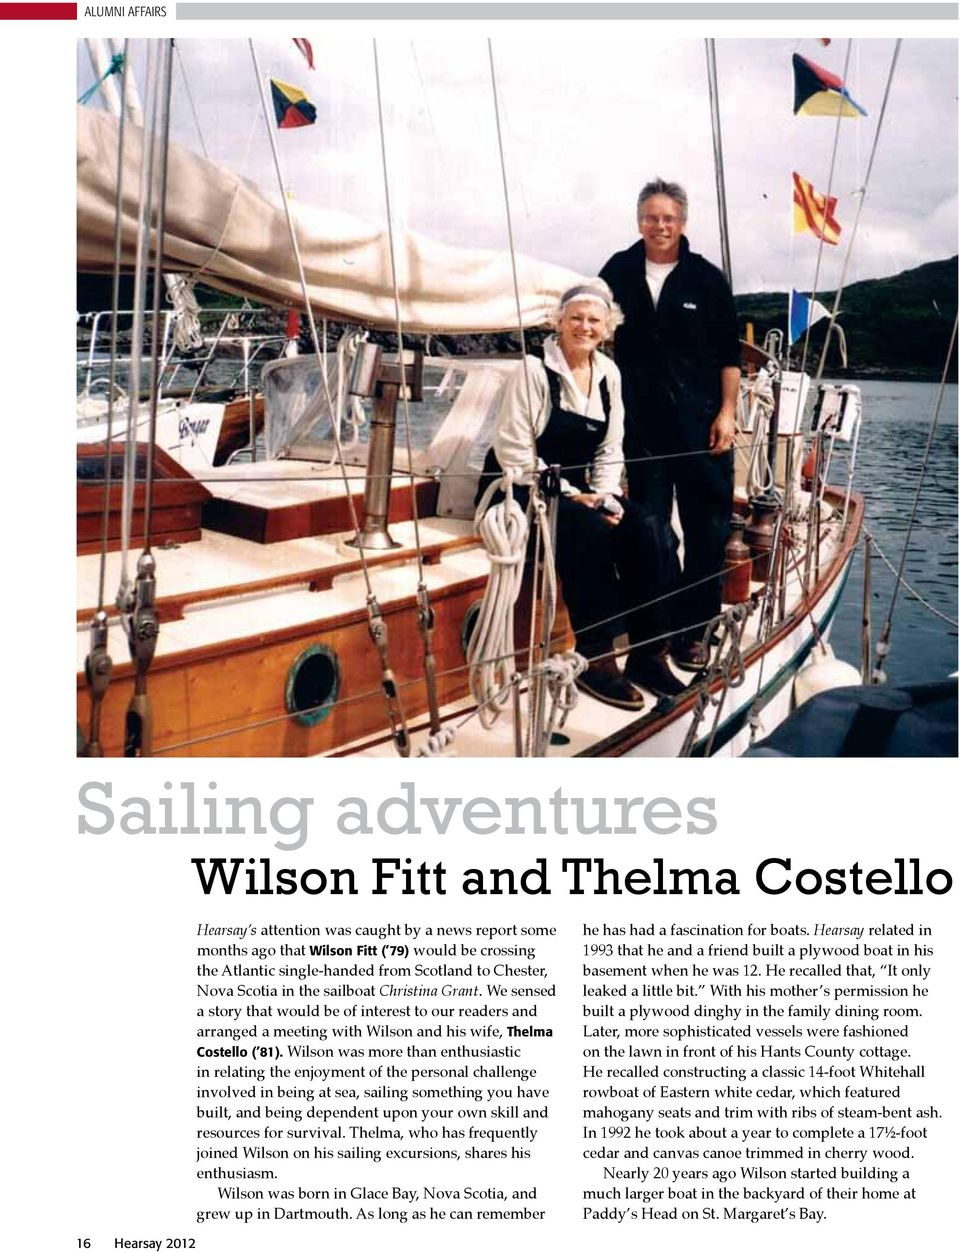 We sensed a story that would be of interest to our readers and arranged a meeting with Wilson and his wife, Thelma Costello ( 81).